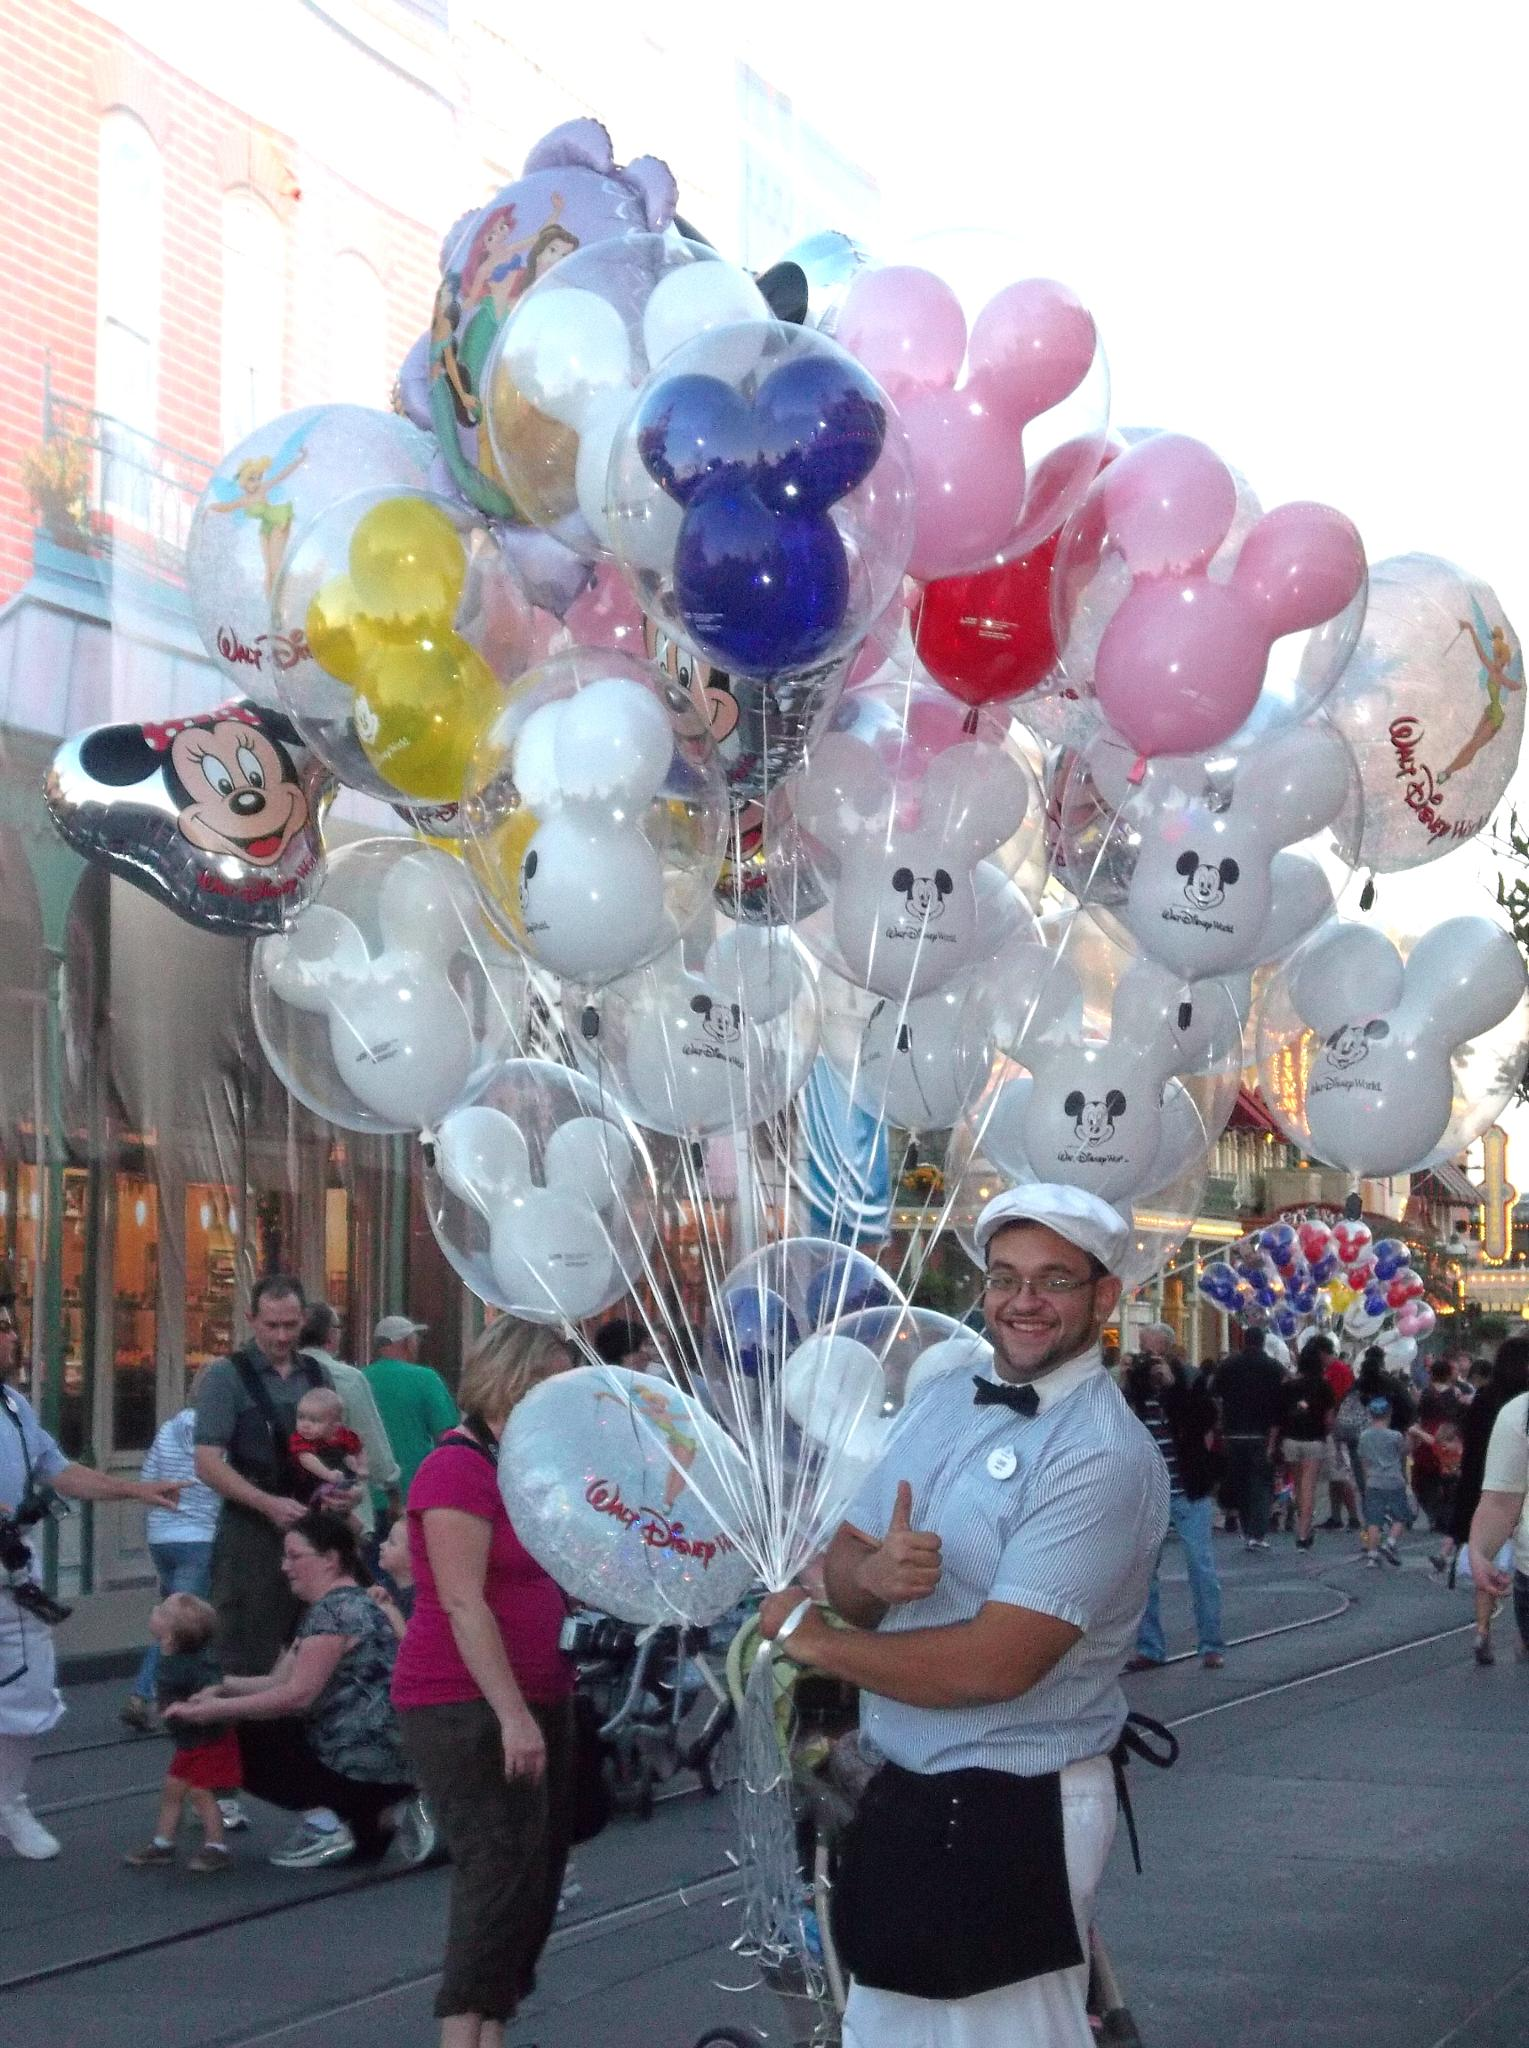 Balloons anyone? by Julie